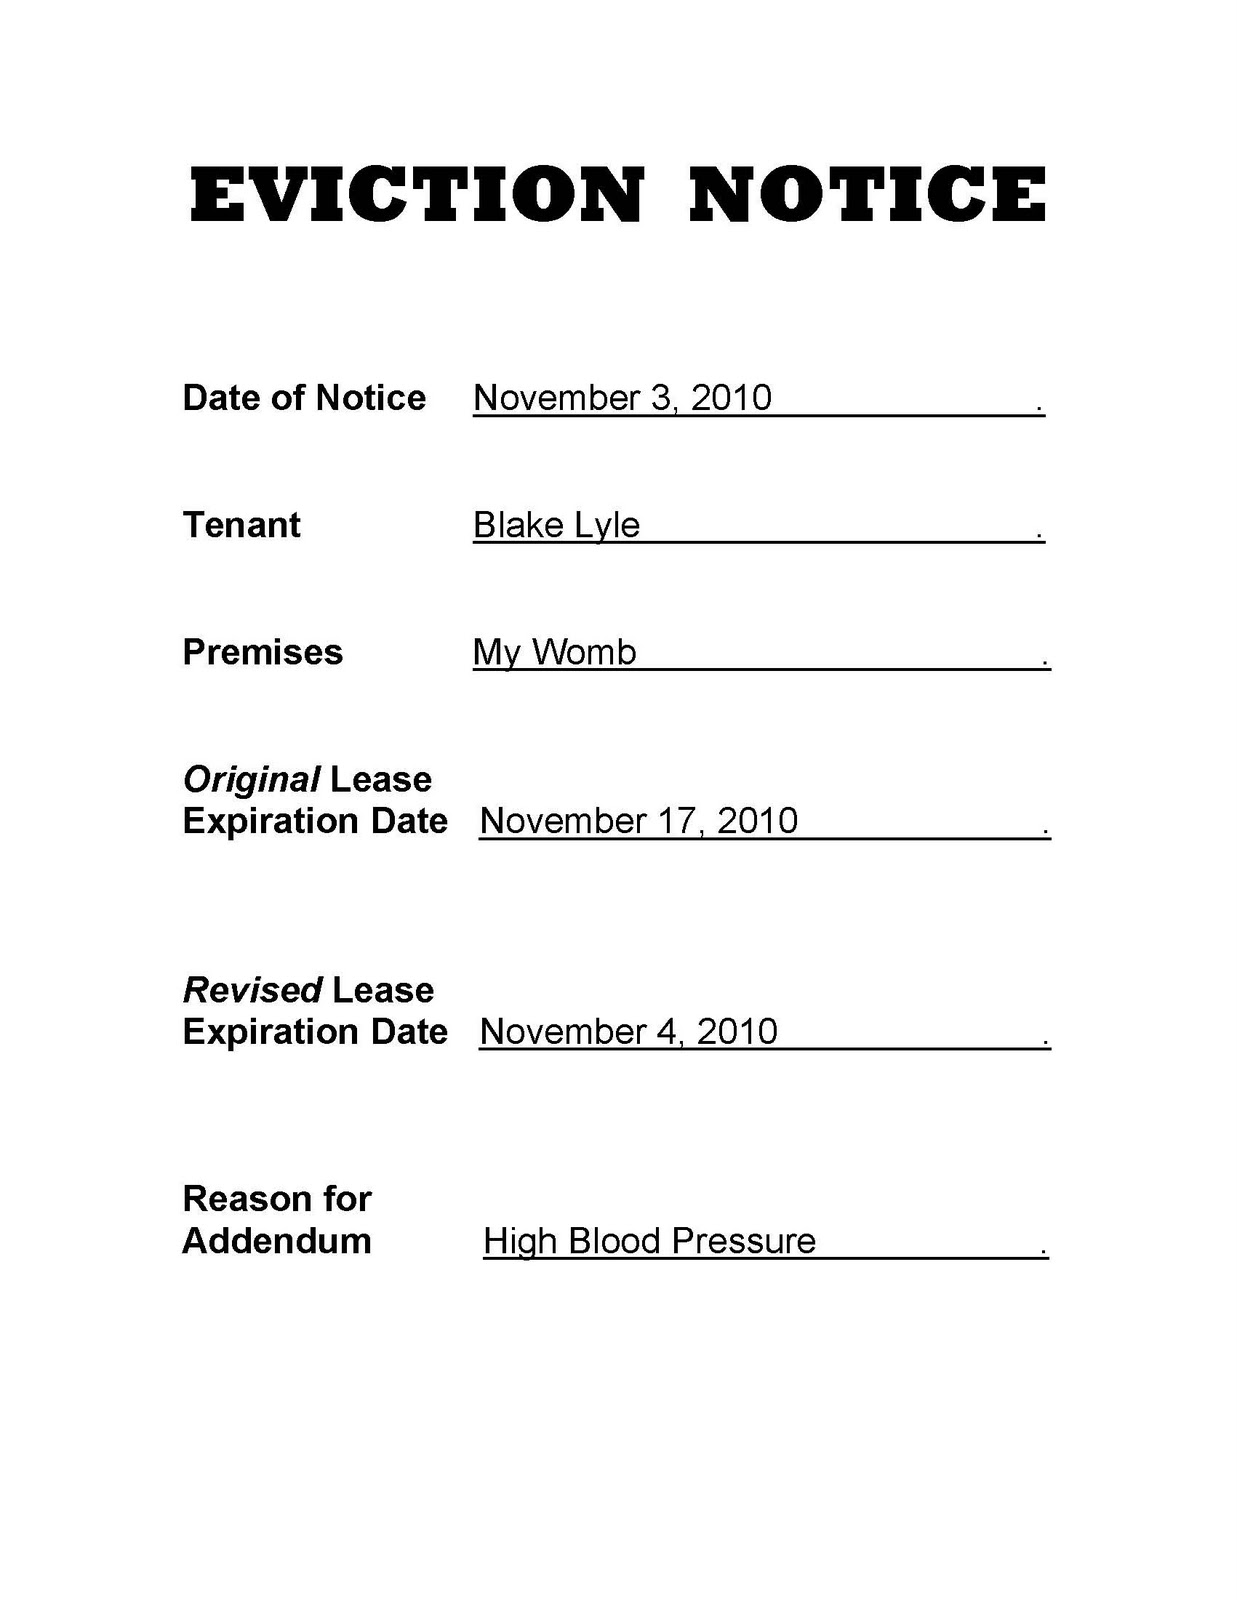 10 Day Eviction Notice Pennsylvania http://lylelife.blogspot.com/2010 ...